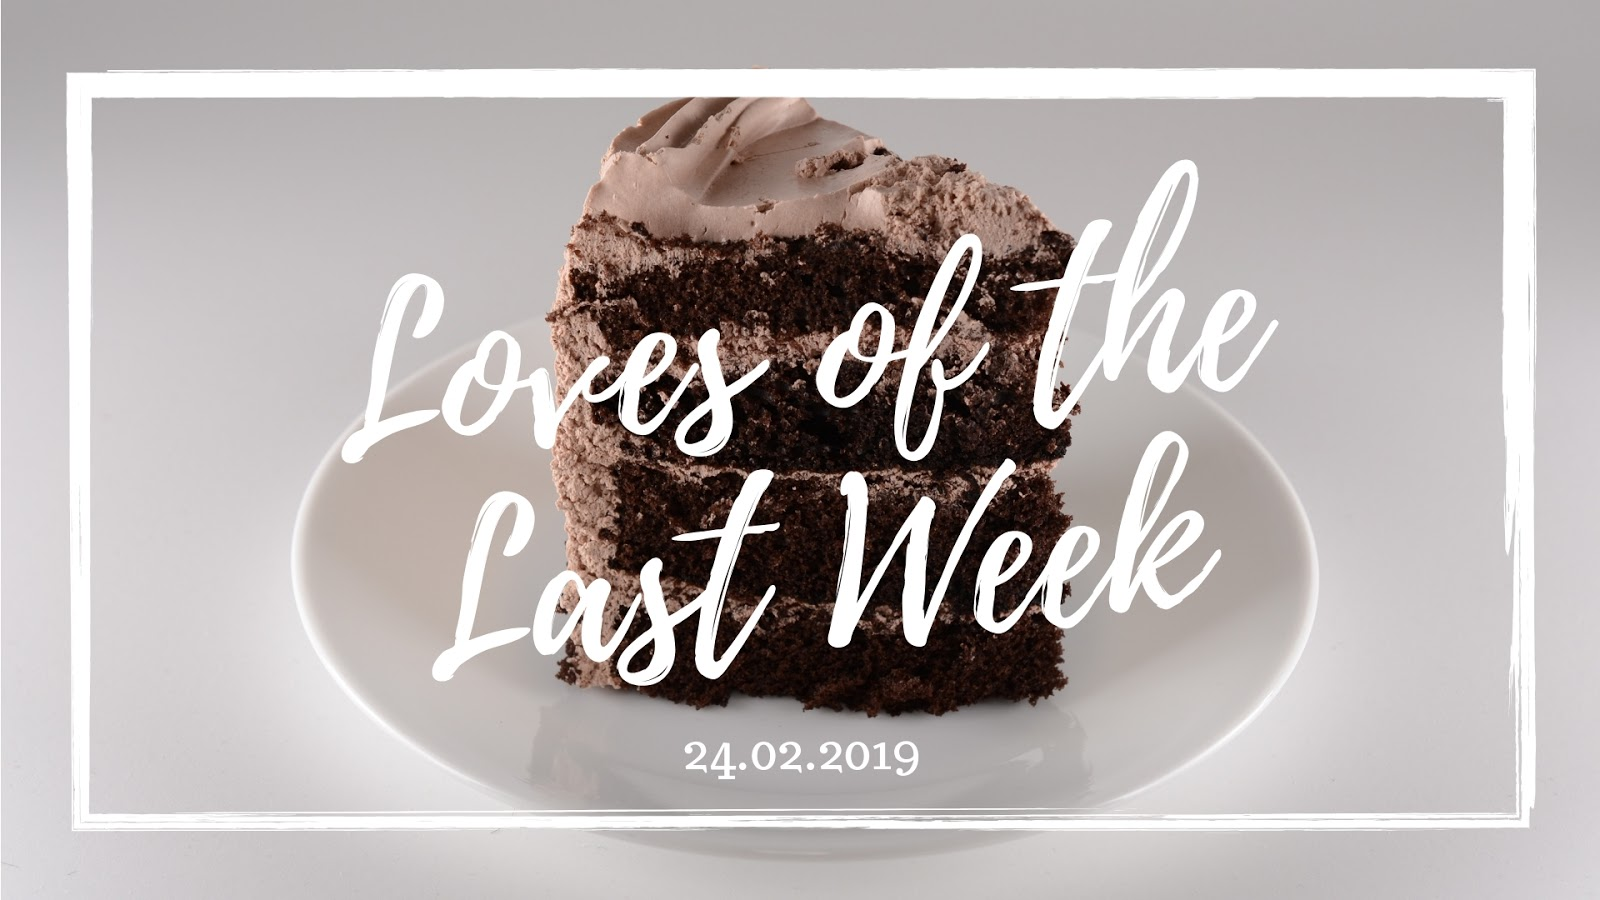 Alt text: Suz and the Sun loves, loves of the last week, Suz and the Sun style, shopping, music, recommendations, yotan ottolenghi Simple, chocolate cake